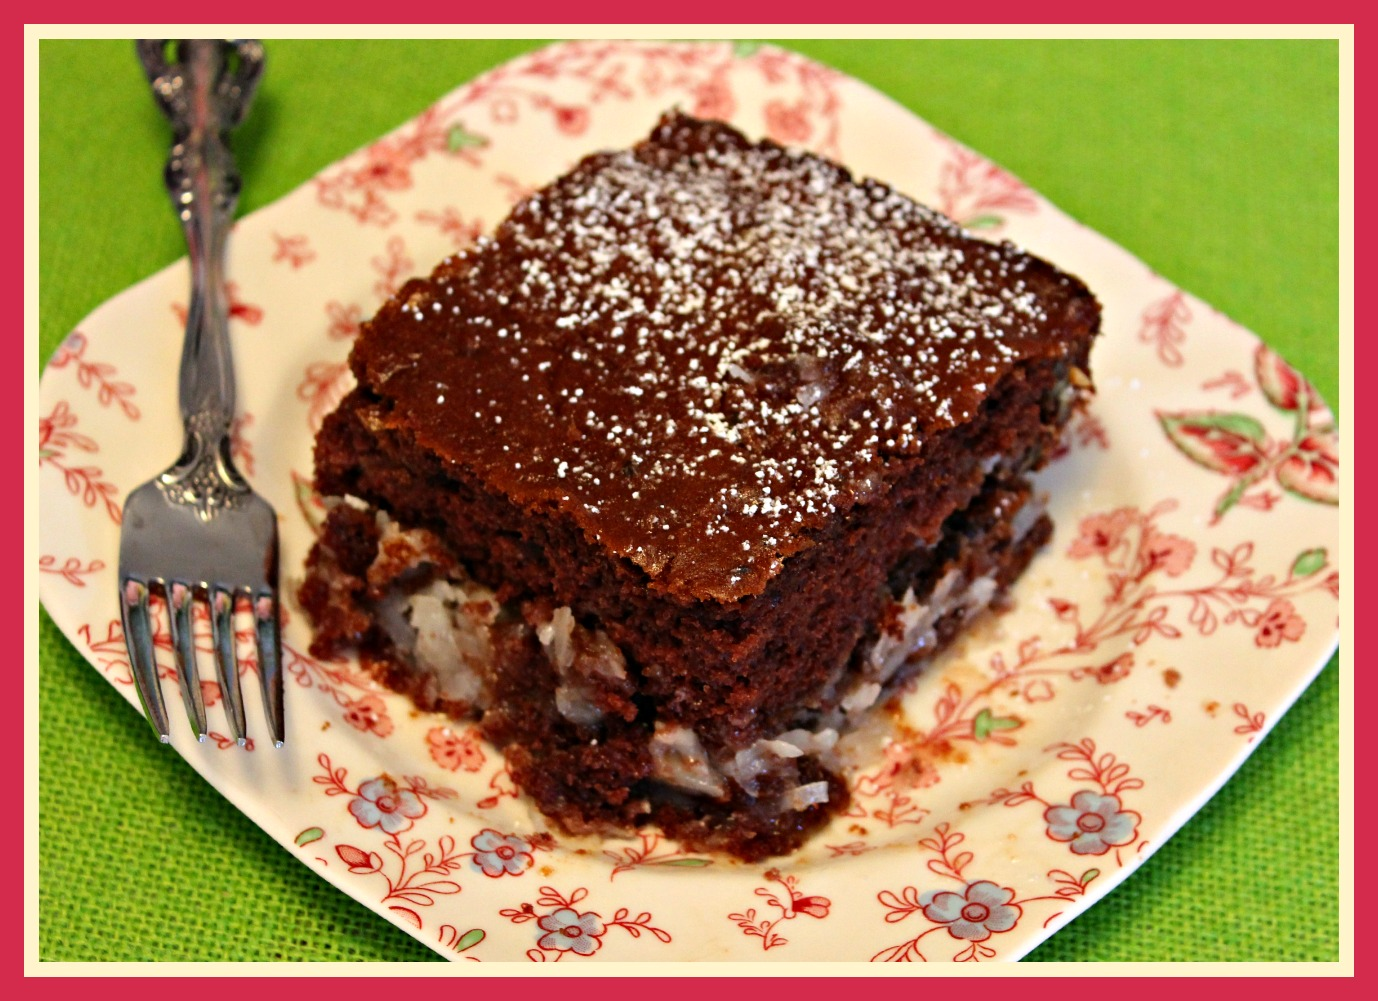 What Makes A Good German Chocolate Cake